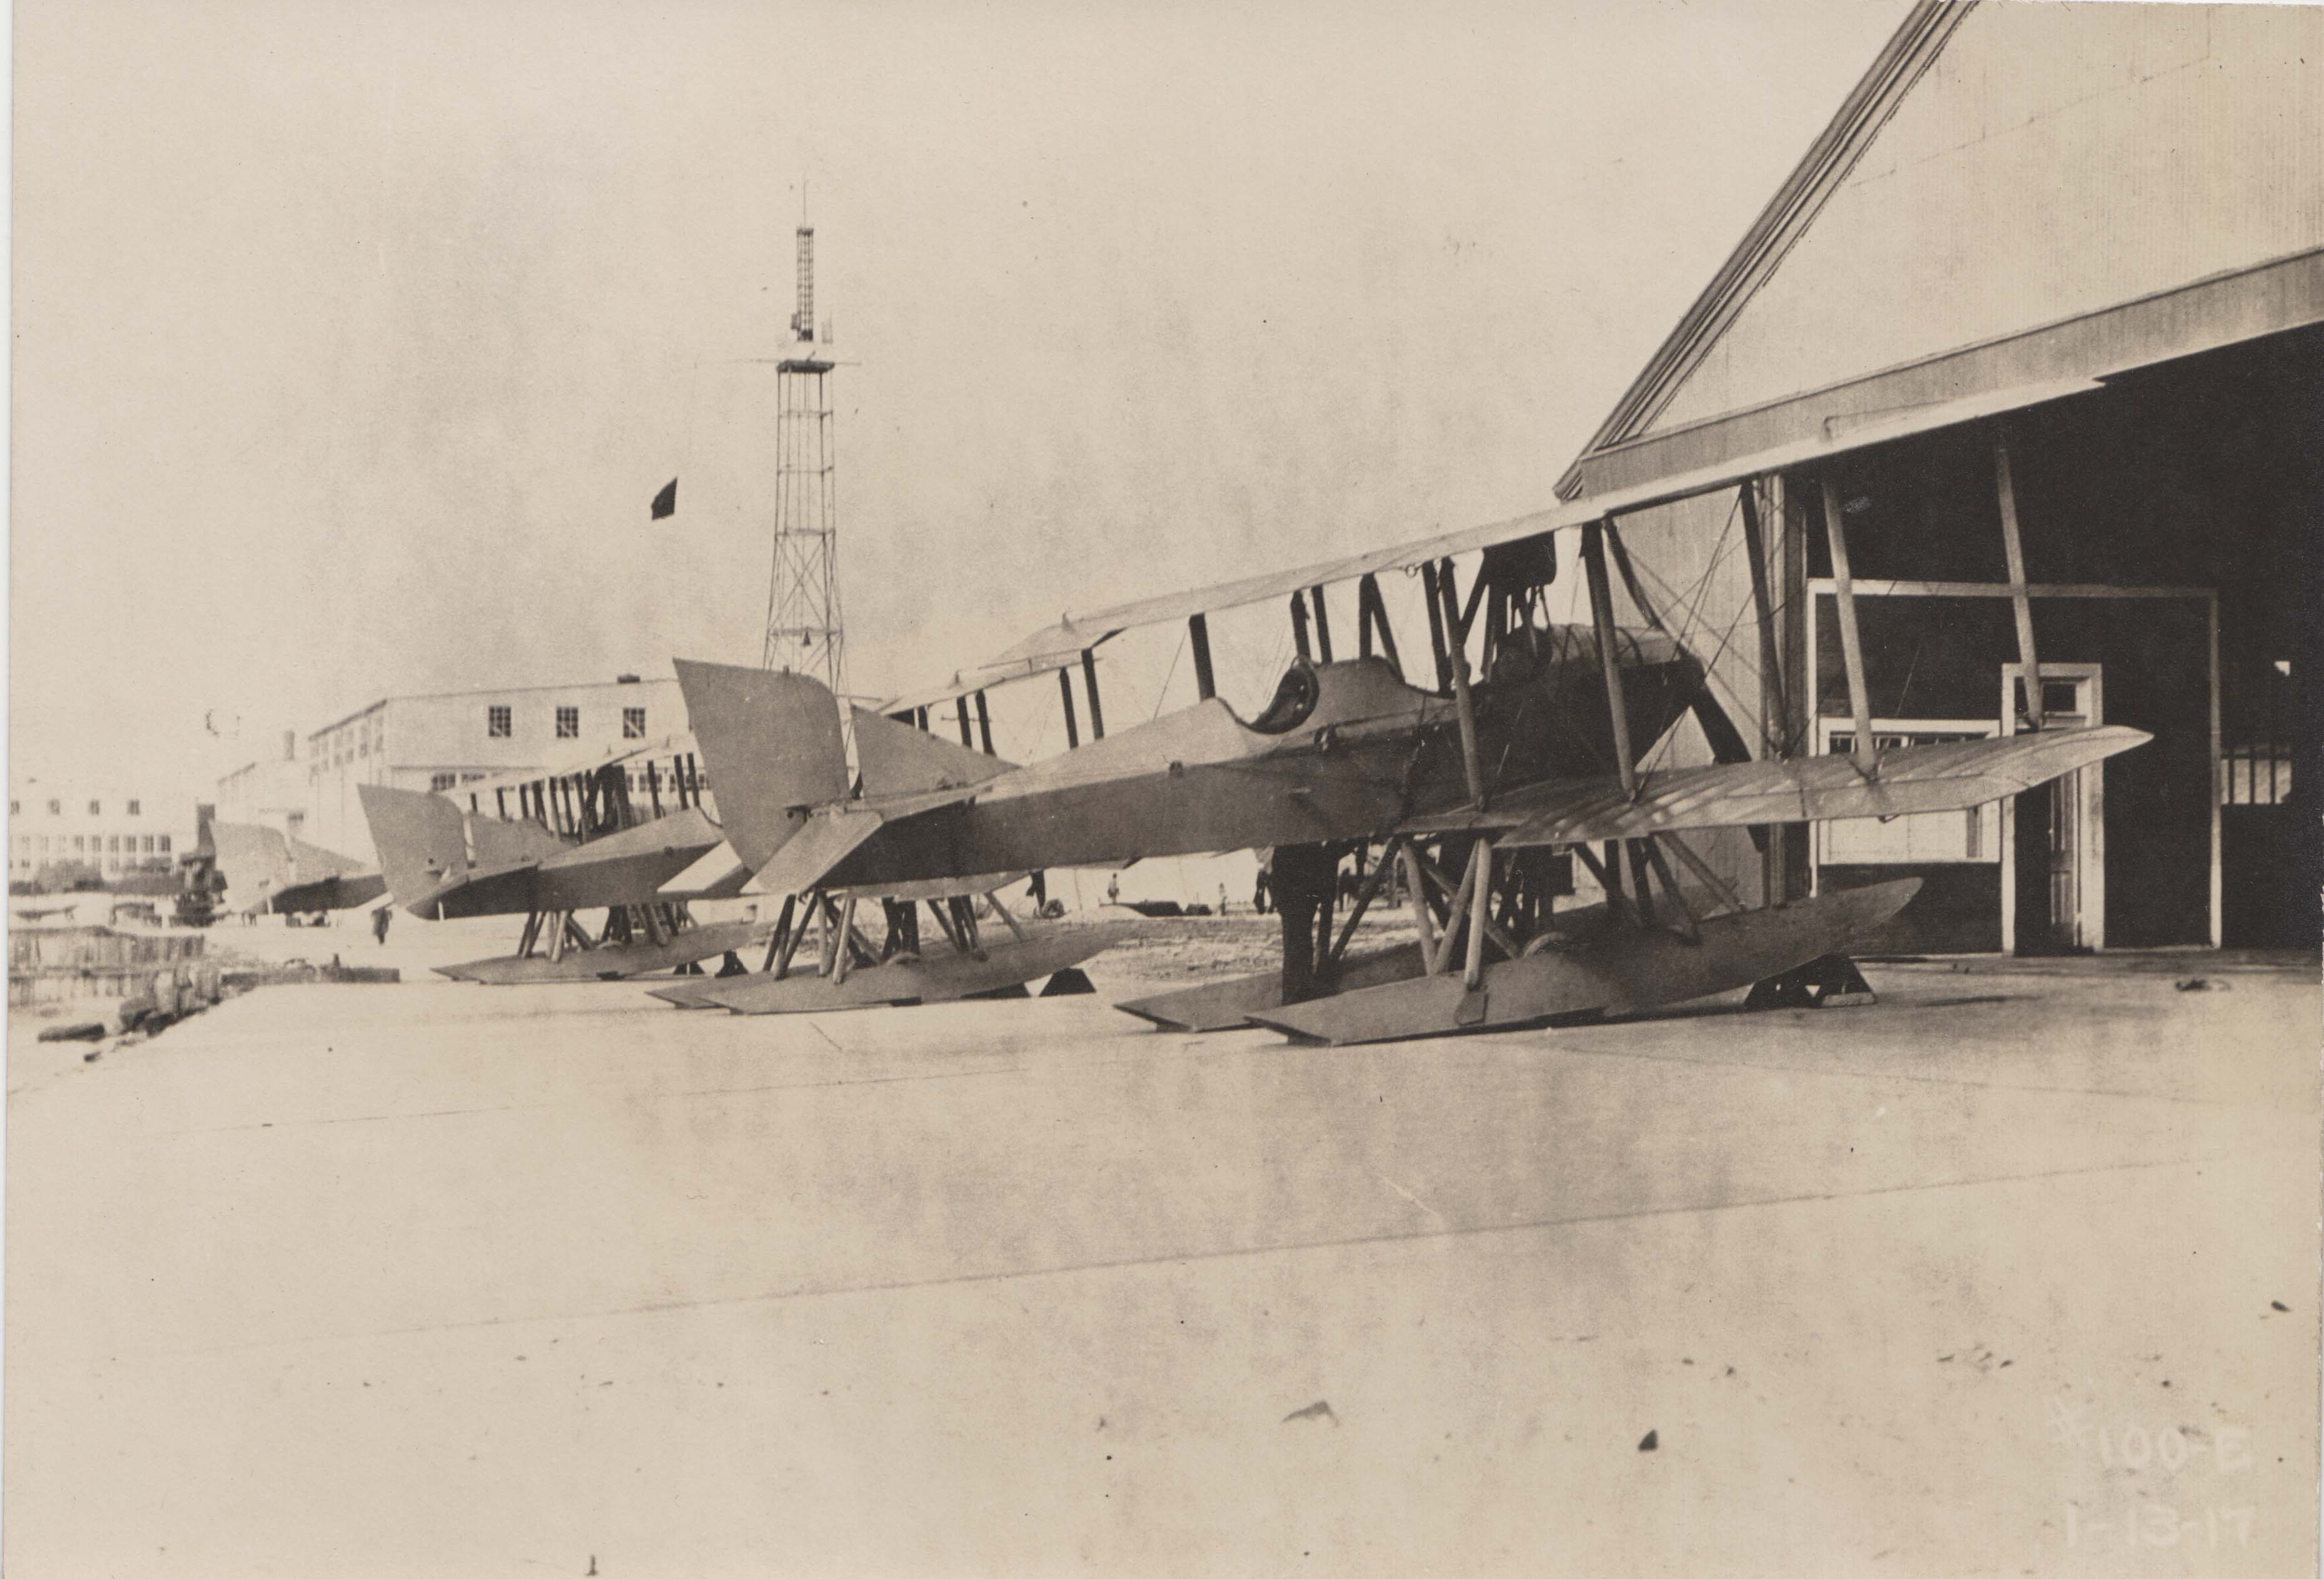 0032 Airplanes in dock